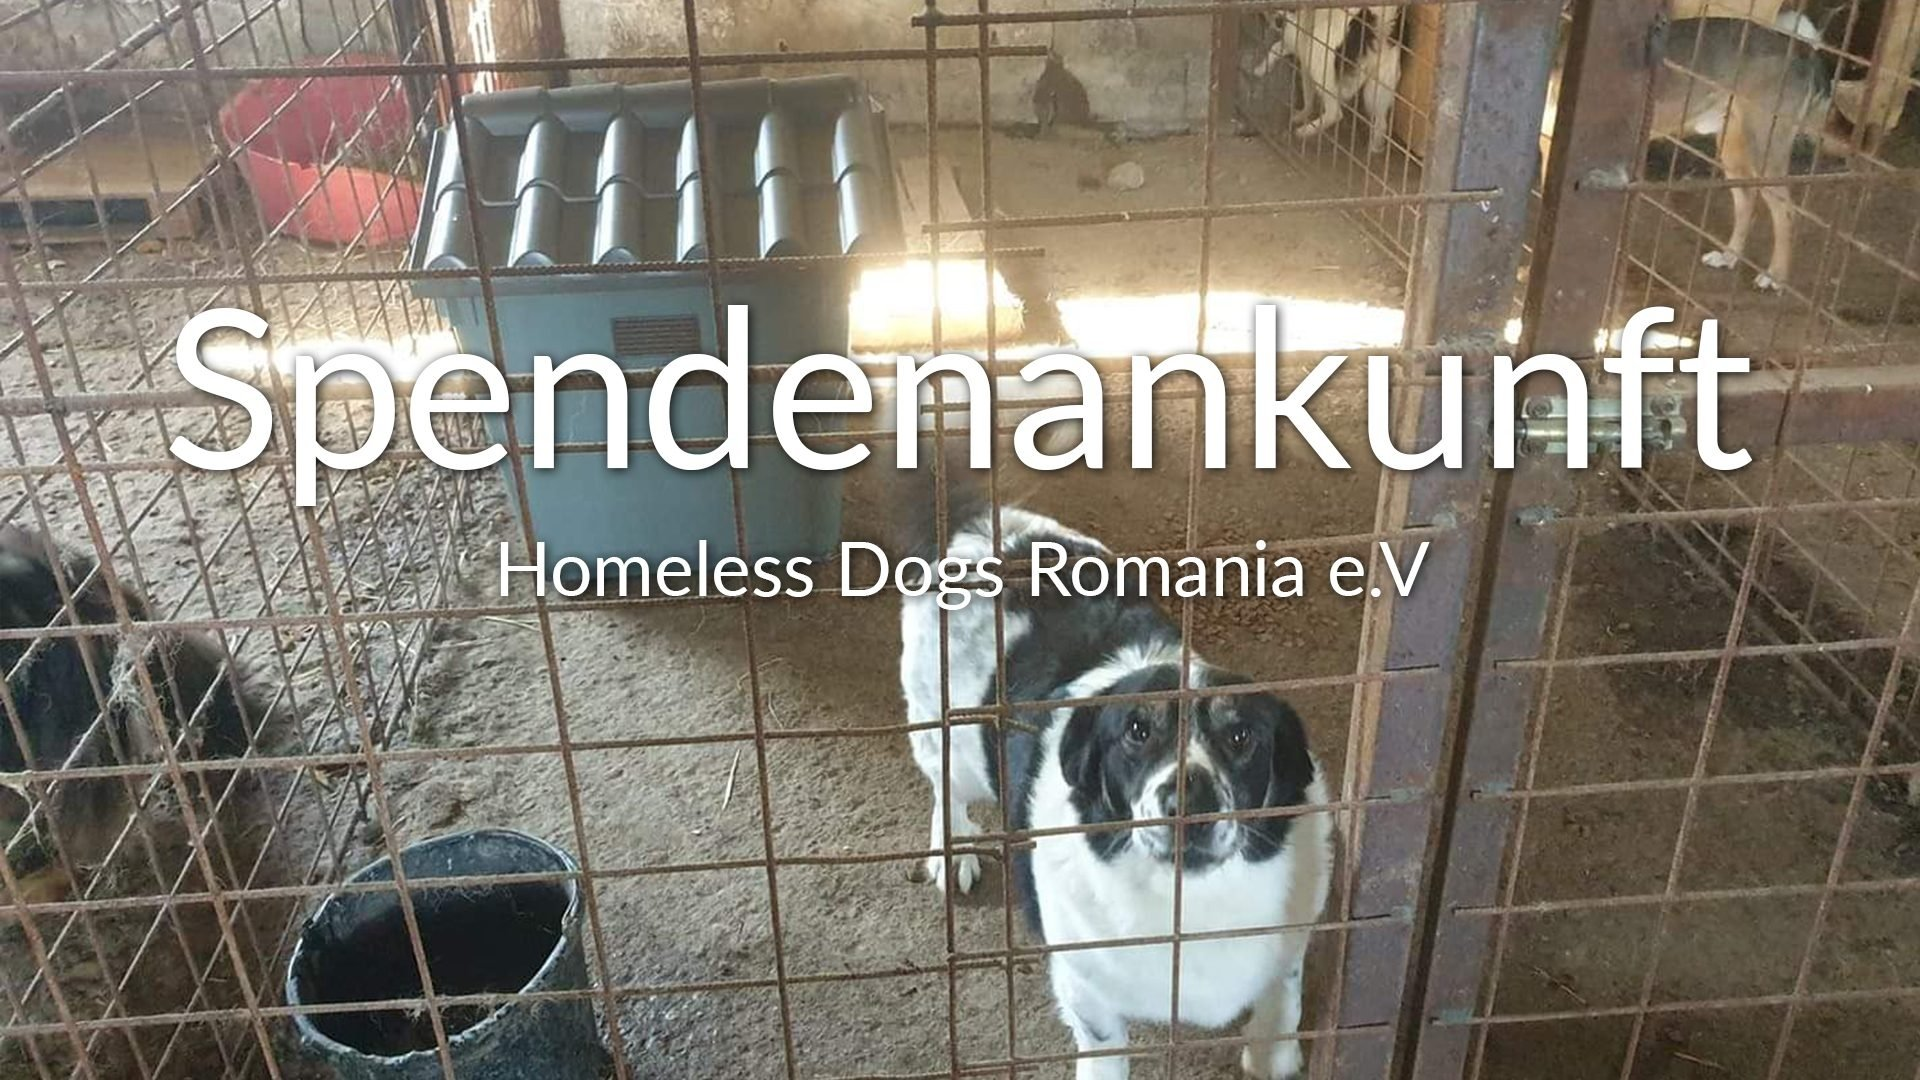 VIDEO_Homeless Dogs Romania e.V._Spendenankunft_SOS Hilferuf aus Rumänien_Rumänien